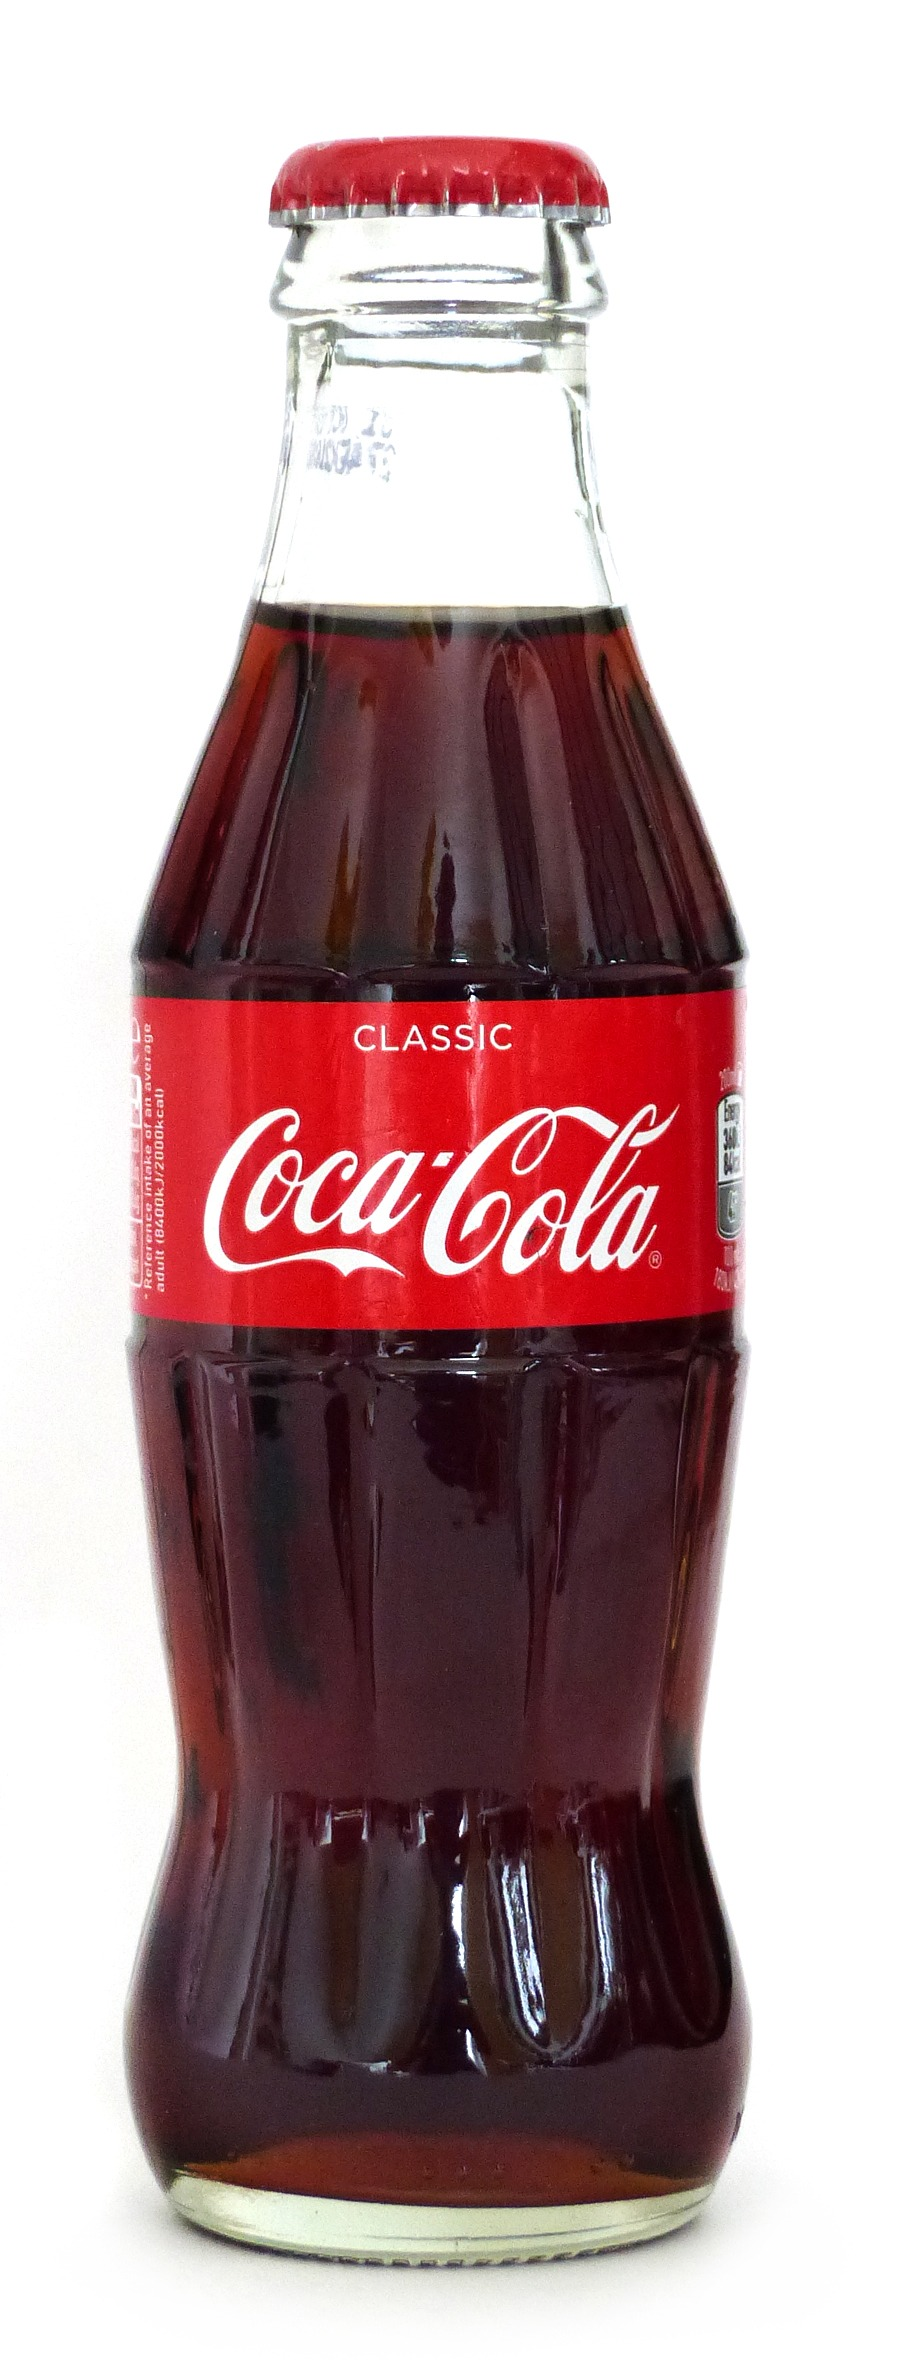 Coke Bottle from England (GB042)